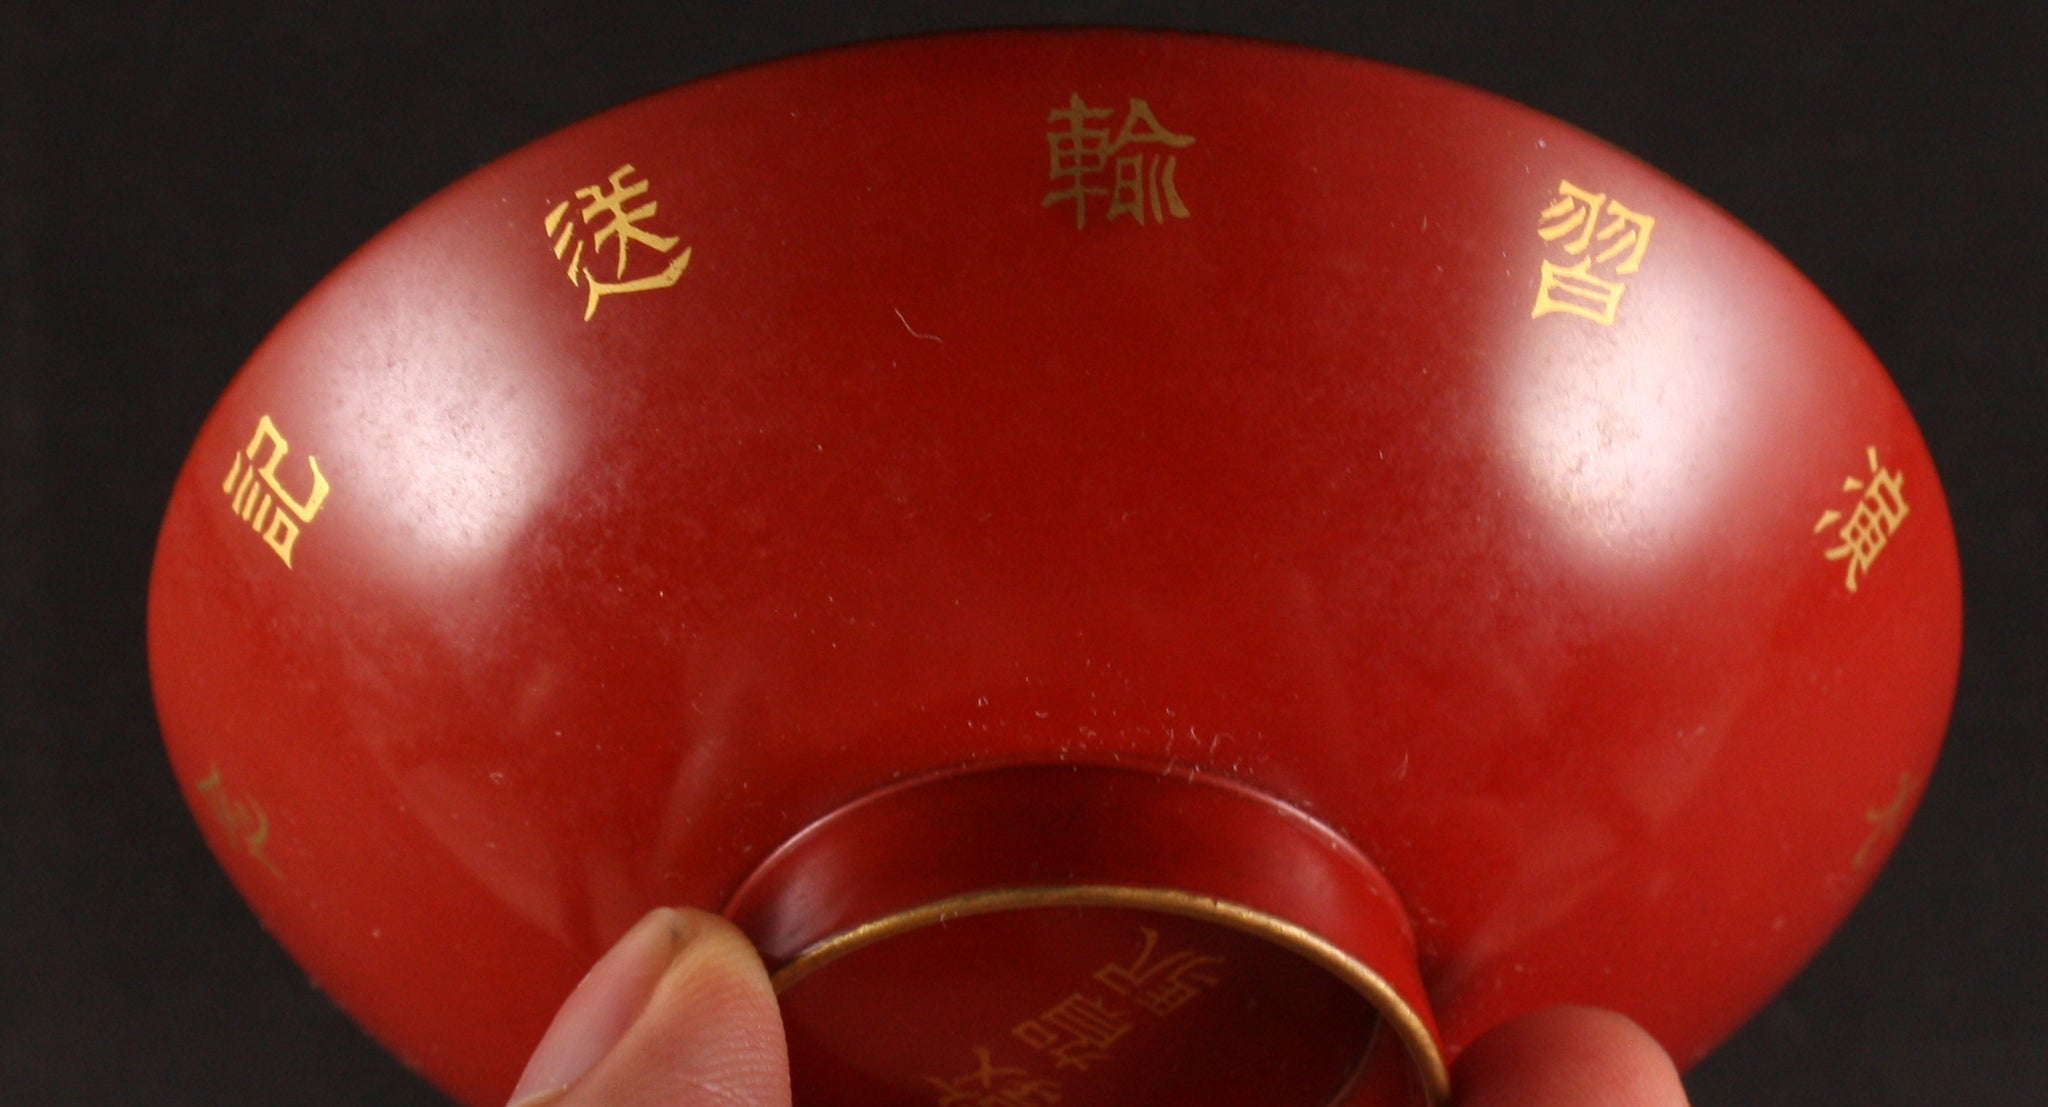 Antique Japanese Military 1933 Military Exercise Railroad Transport Commemoration Lacquer Sake Cup